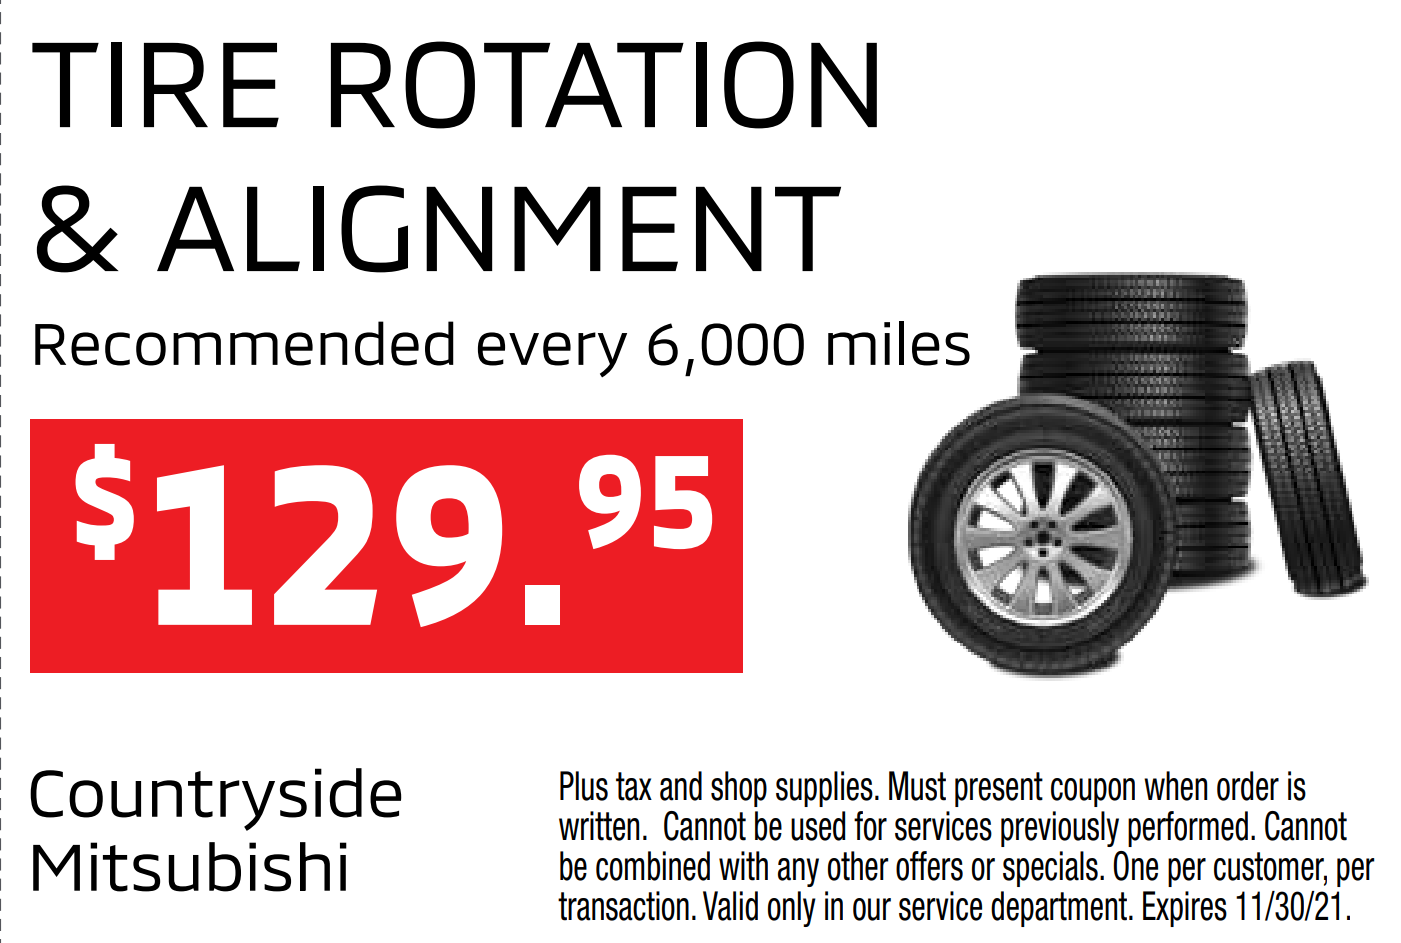 Tire rotation & alignment for $129.95